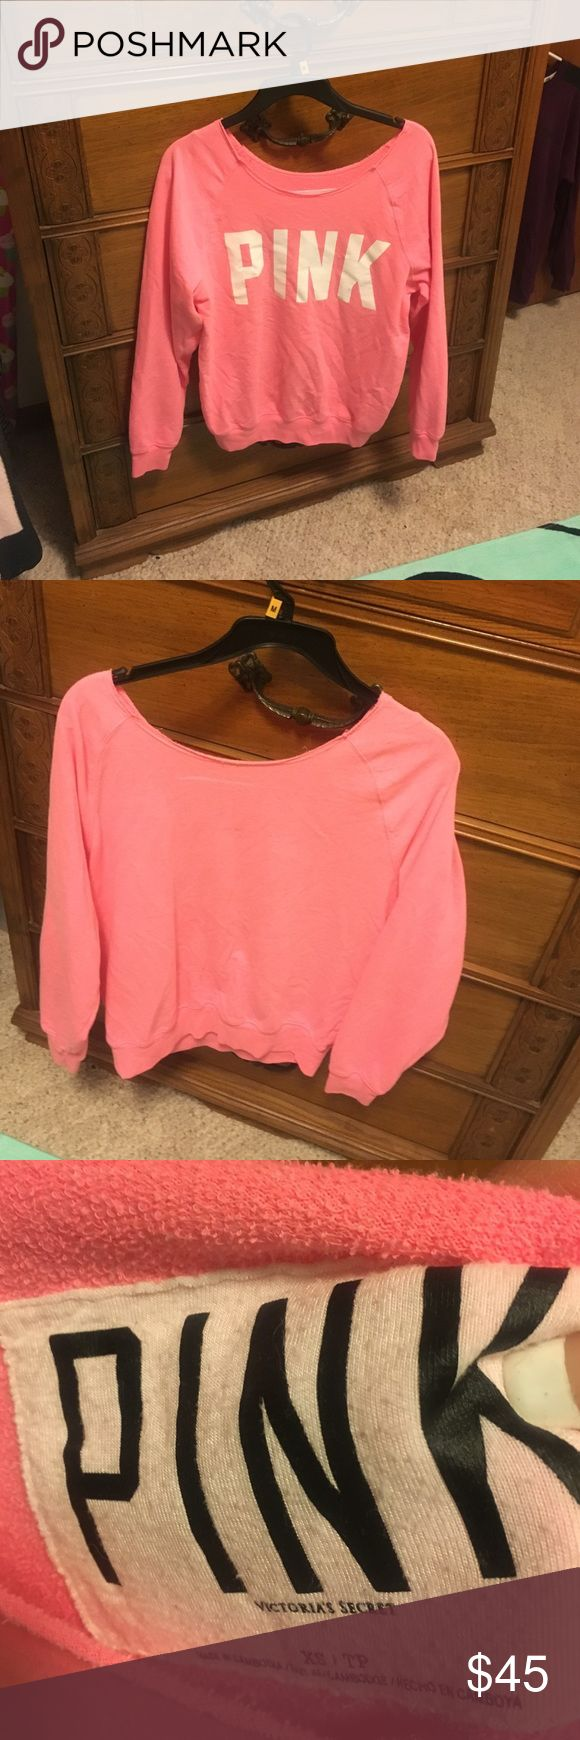 Pink slouchy crew Size XS can be worn on shoulders or hanging off 1 shoulder PINK Victoria's Secret Tops Sweatshirts & Hoodies